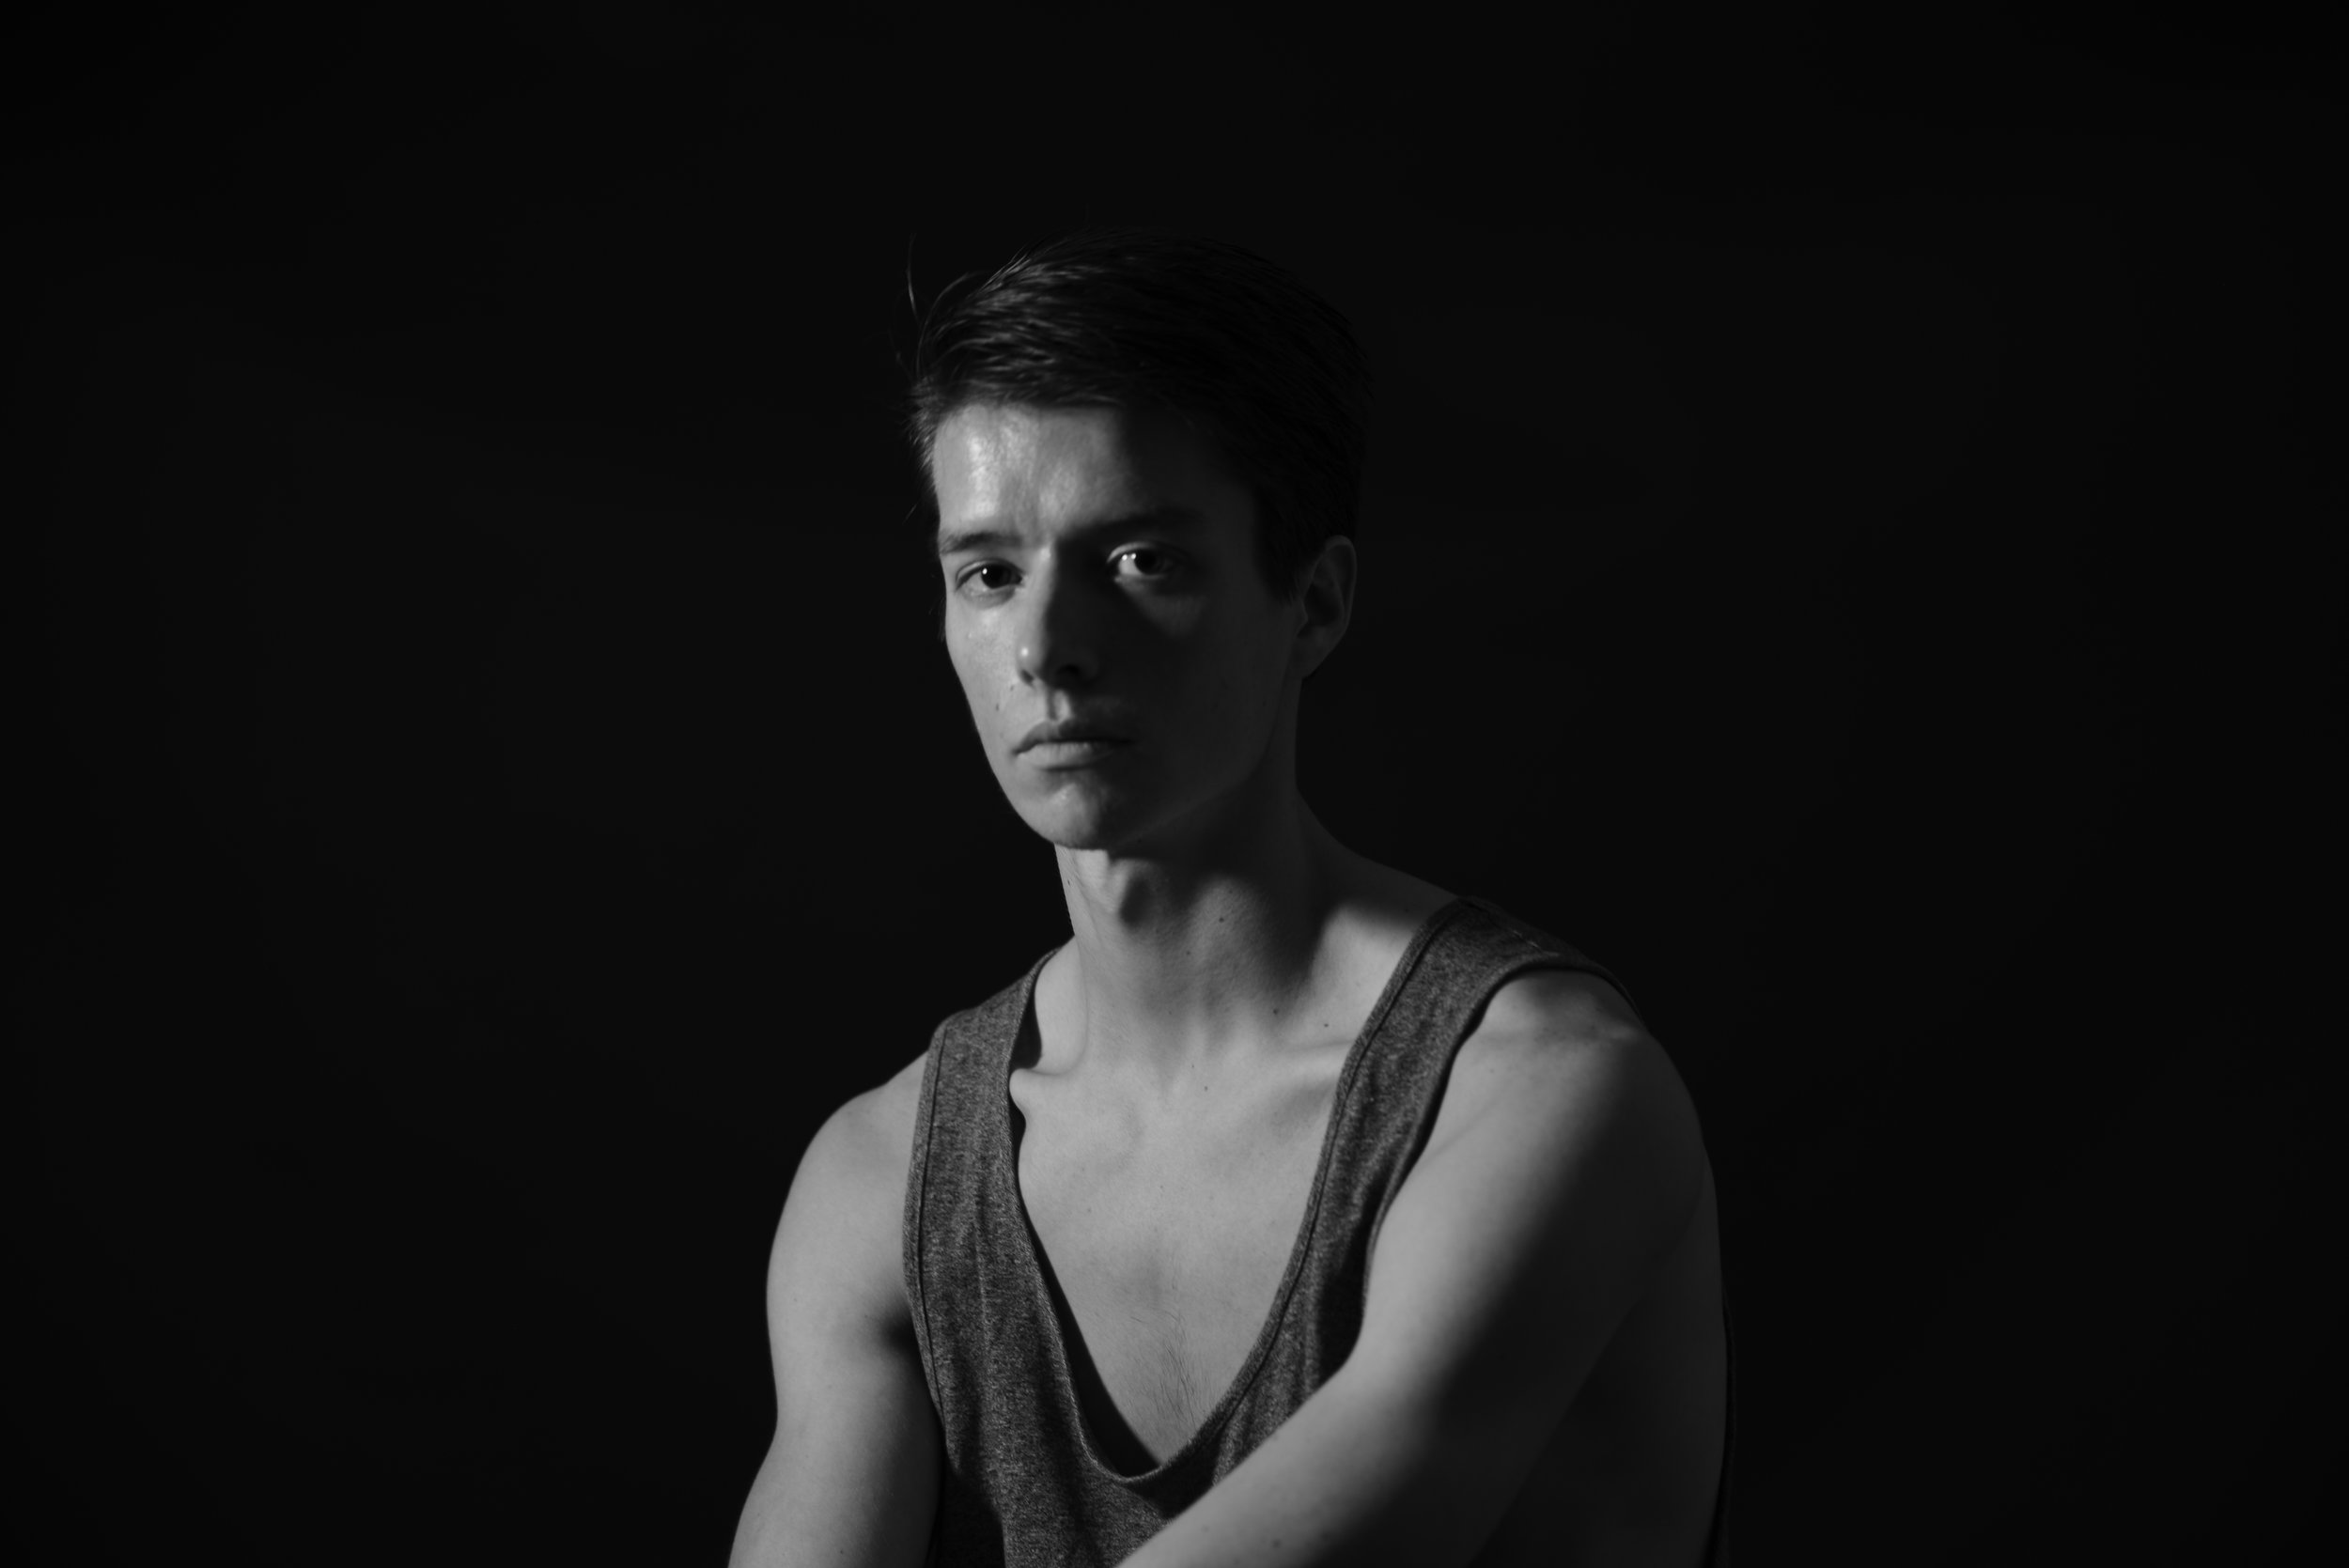 Zac Bigbee   Zac Bigbee was born and raised in New Mexico. A series of coincidences influenced him to take his first ballet class as a senior in high school. He went on to study Russian language and Mathematics at the University of Arizona, while training in dance domestically and abroad. He is returning for his second season with cocodaco.